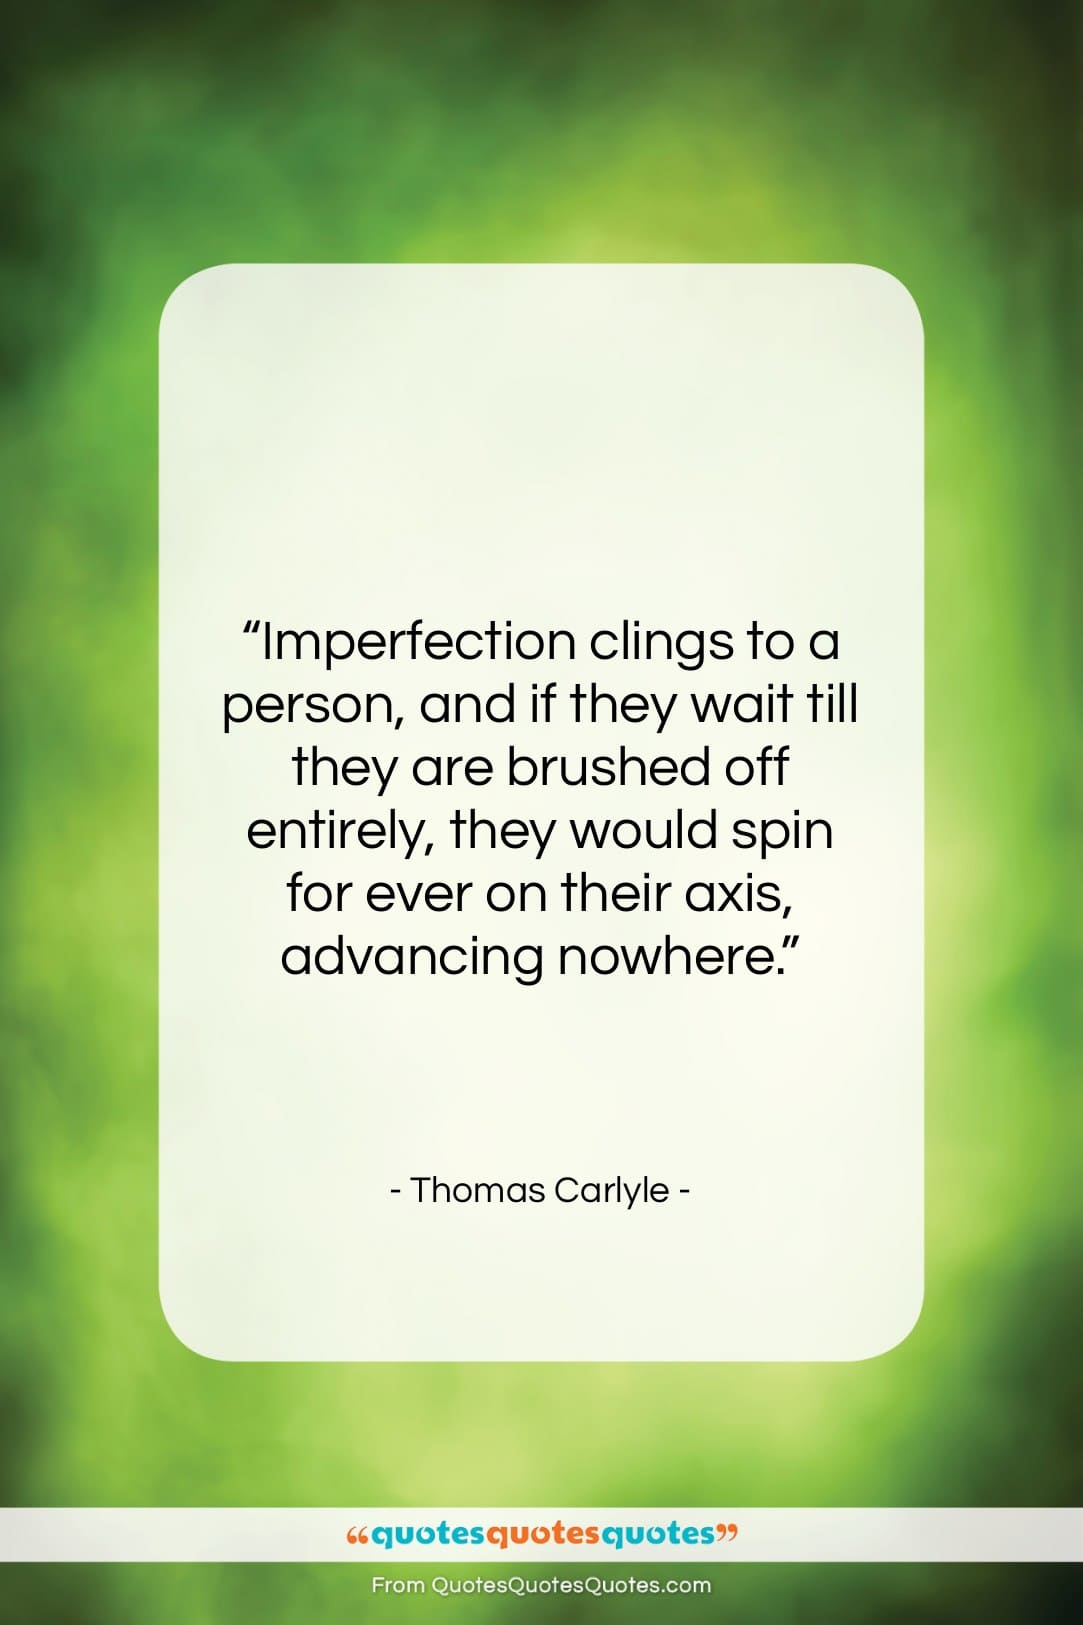 """Thomas Carlyle quote: """"Imperfection clings to a person, and if…""""- at QuotesQuotesQuotes.com"""